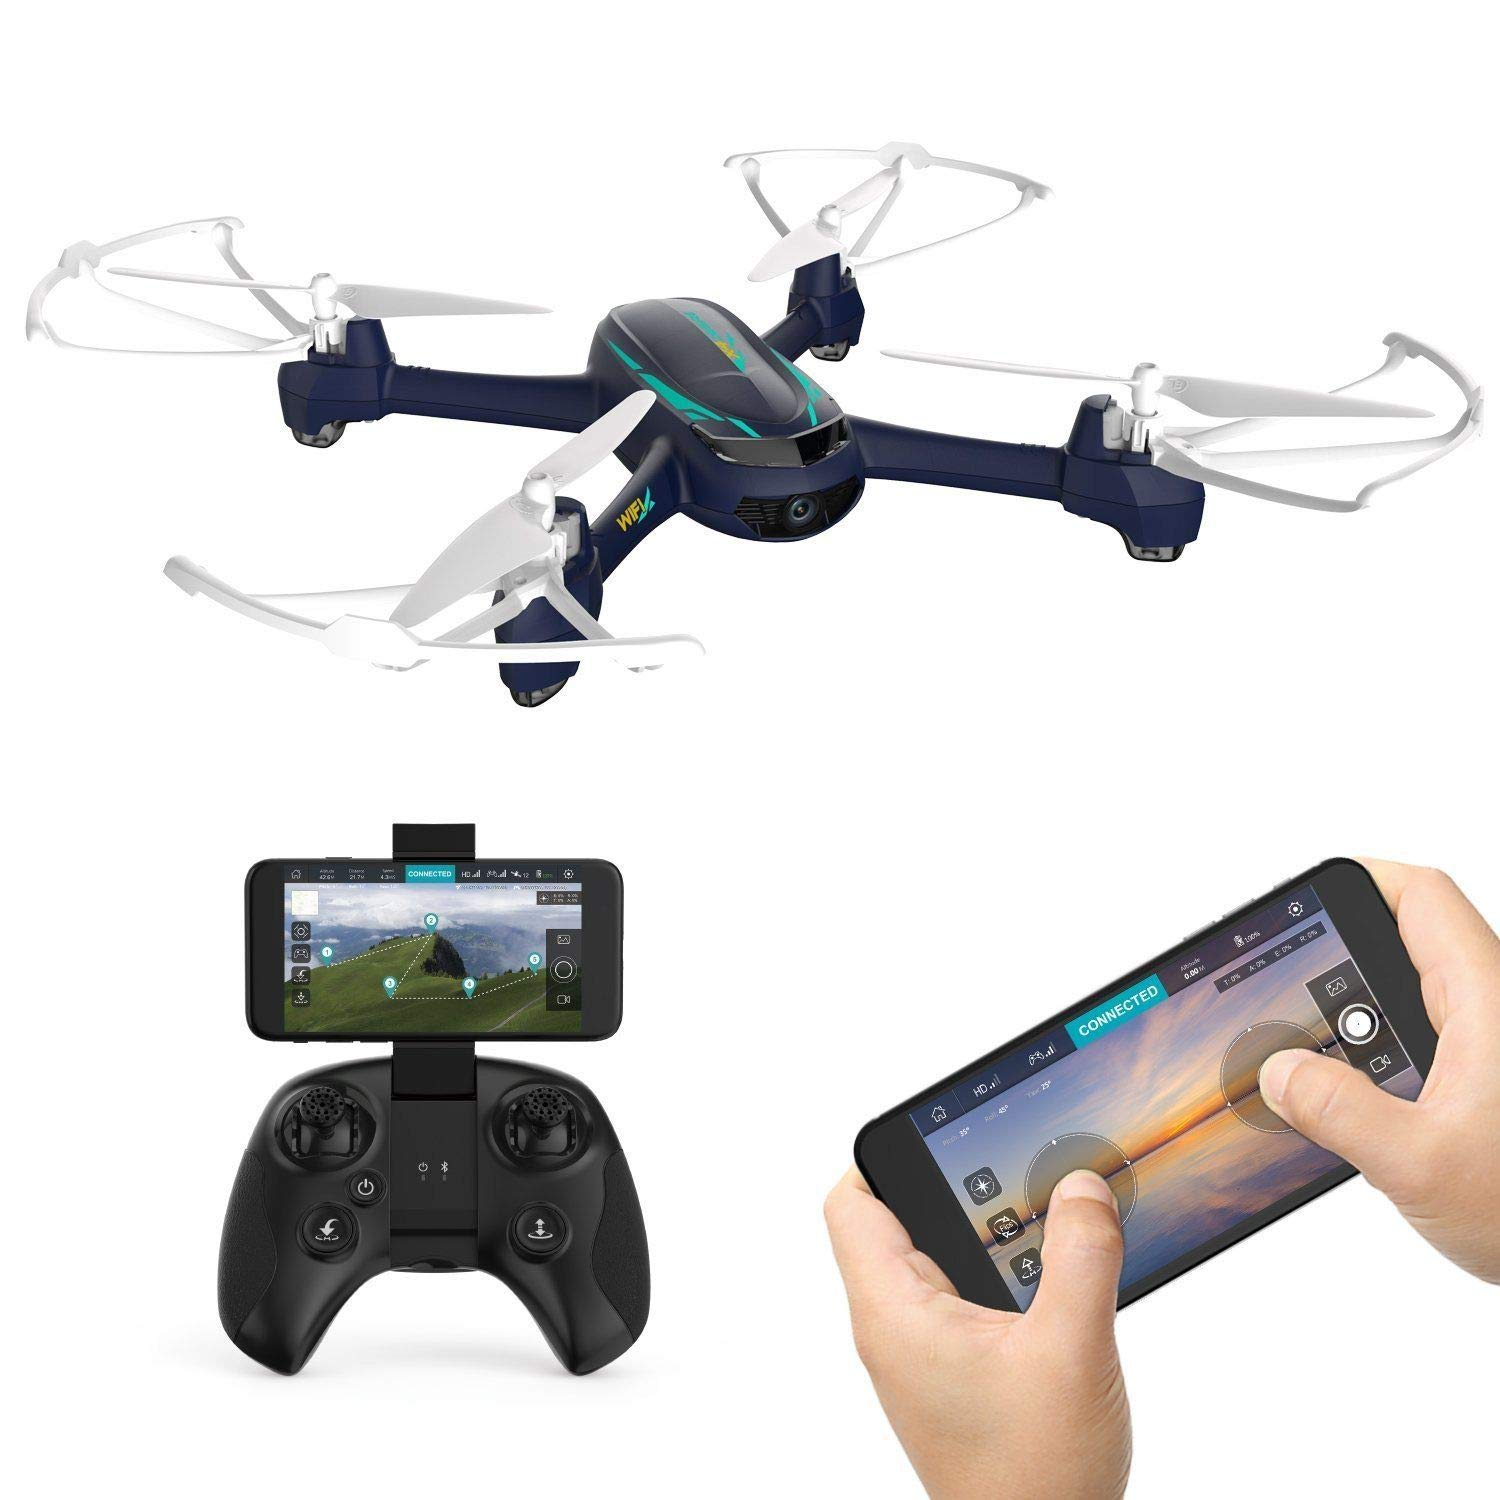 HUBSAN H216A X4 Desire PRO WiFi Waypoints FPV Drone Adults RC Helicopter Quadcopter with1080P WiFi Camera Live Video Altitude Hold Headless Mode RTF